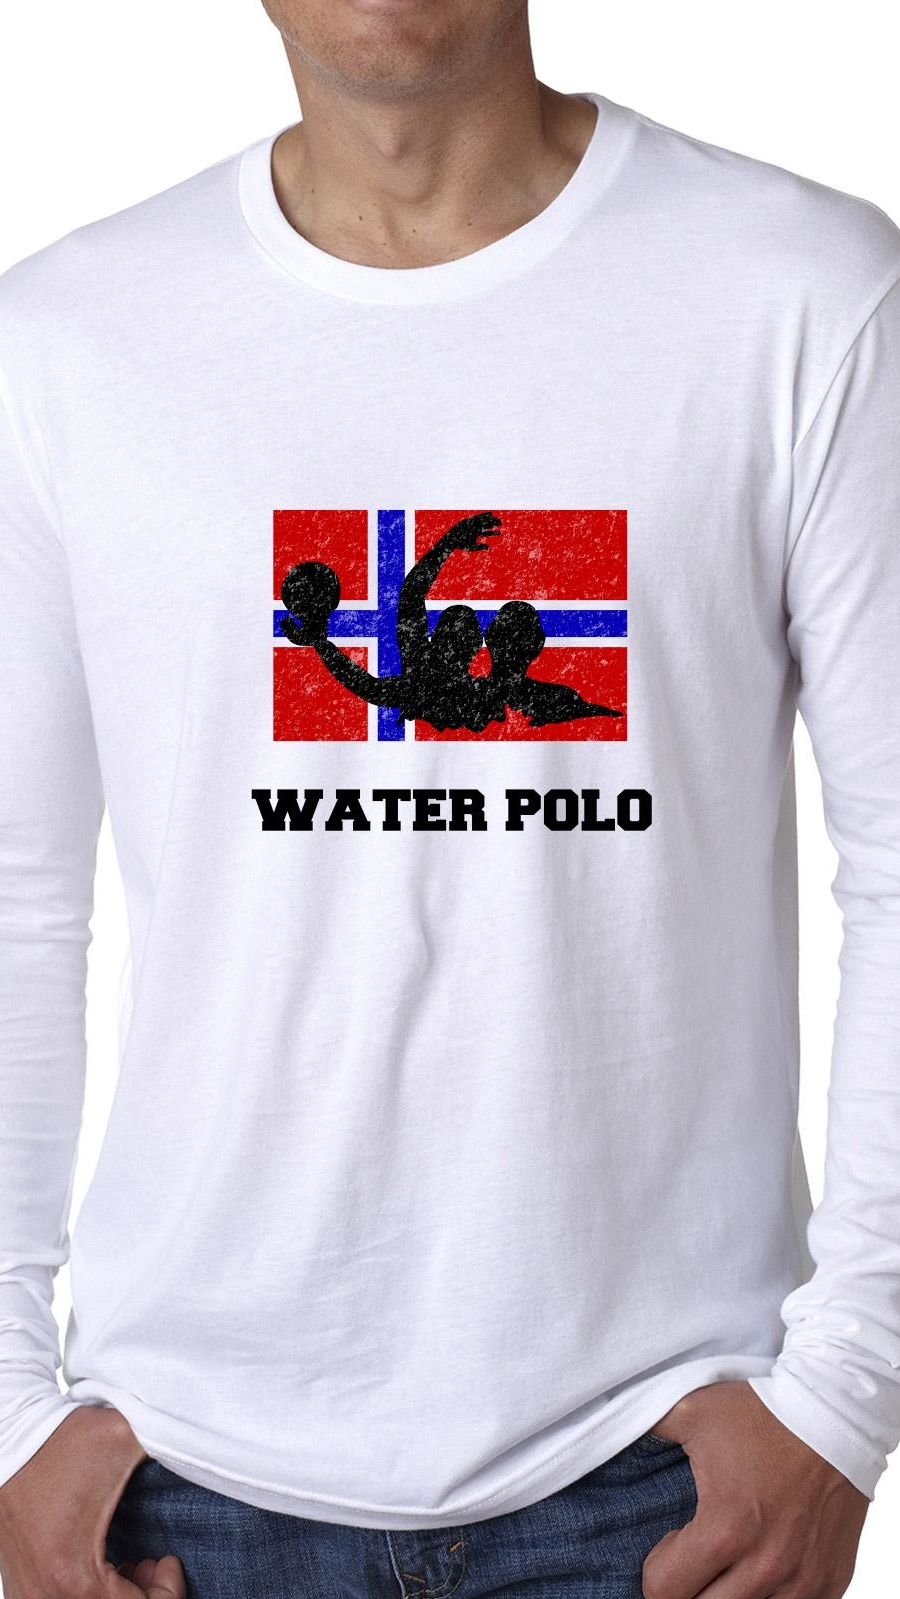 Norway Olympic Water Polo Flag Silhouette Men's Long Sleeve T-Shirt by Hollywood Thread